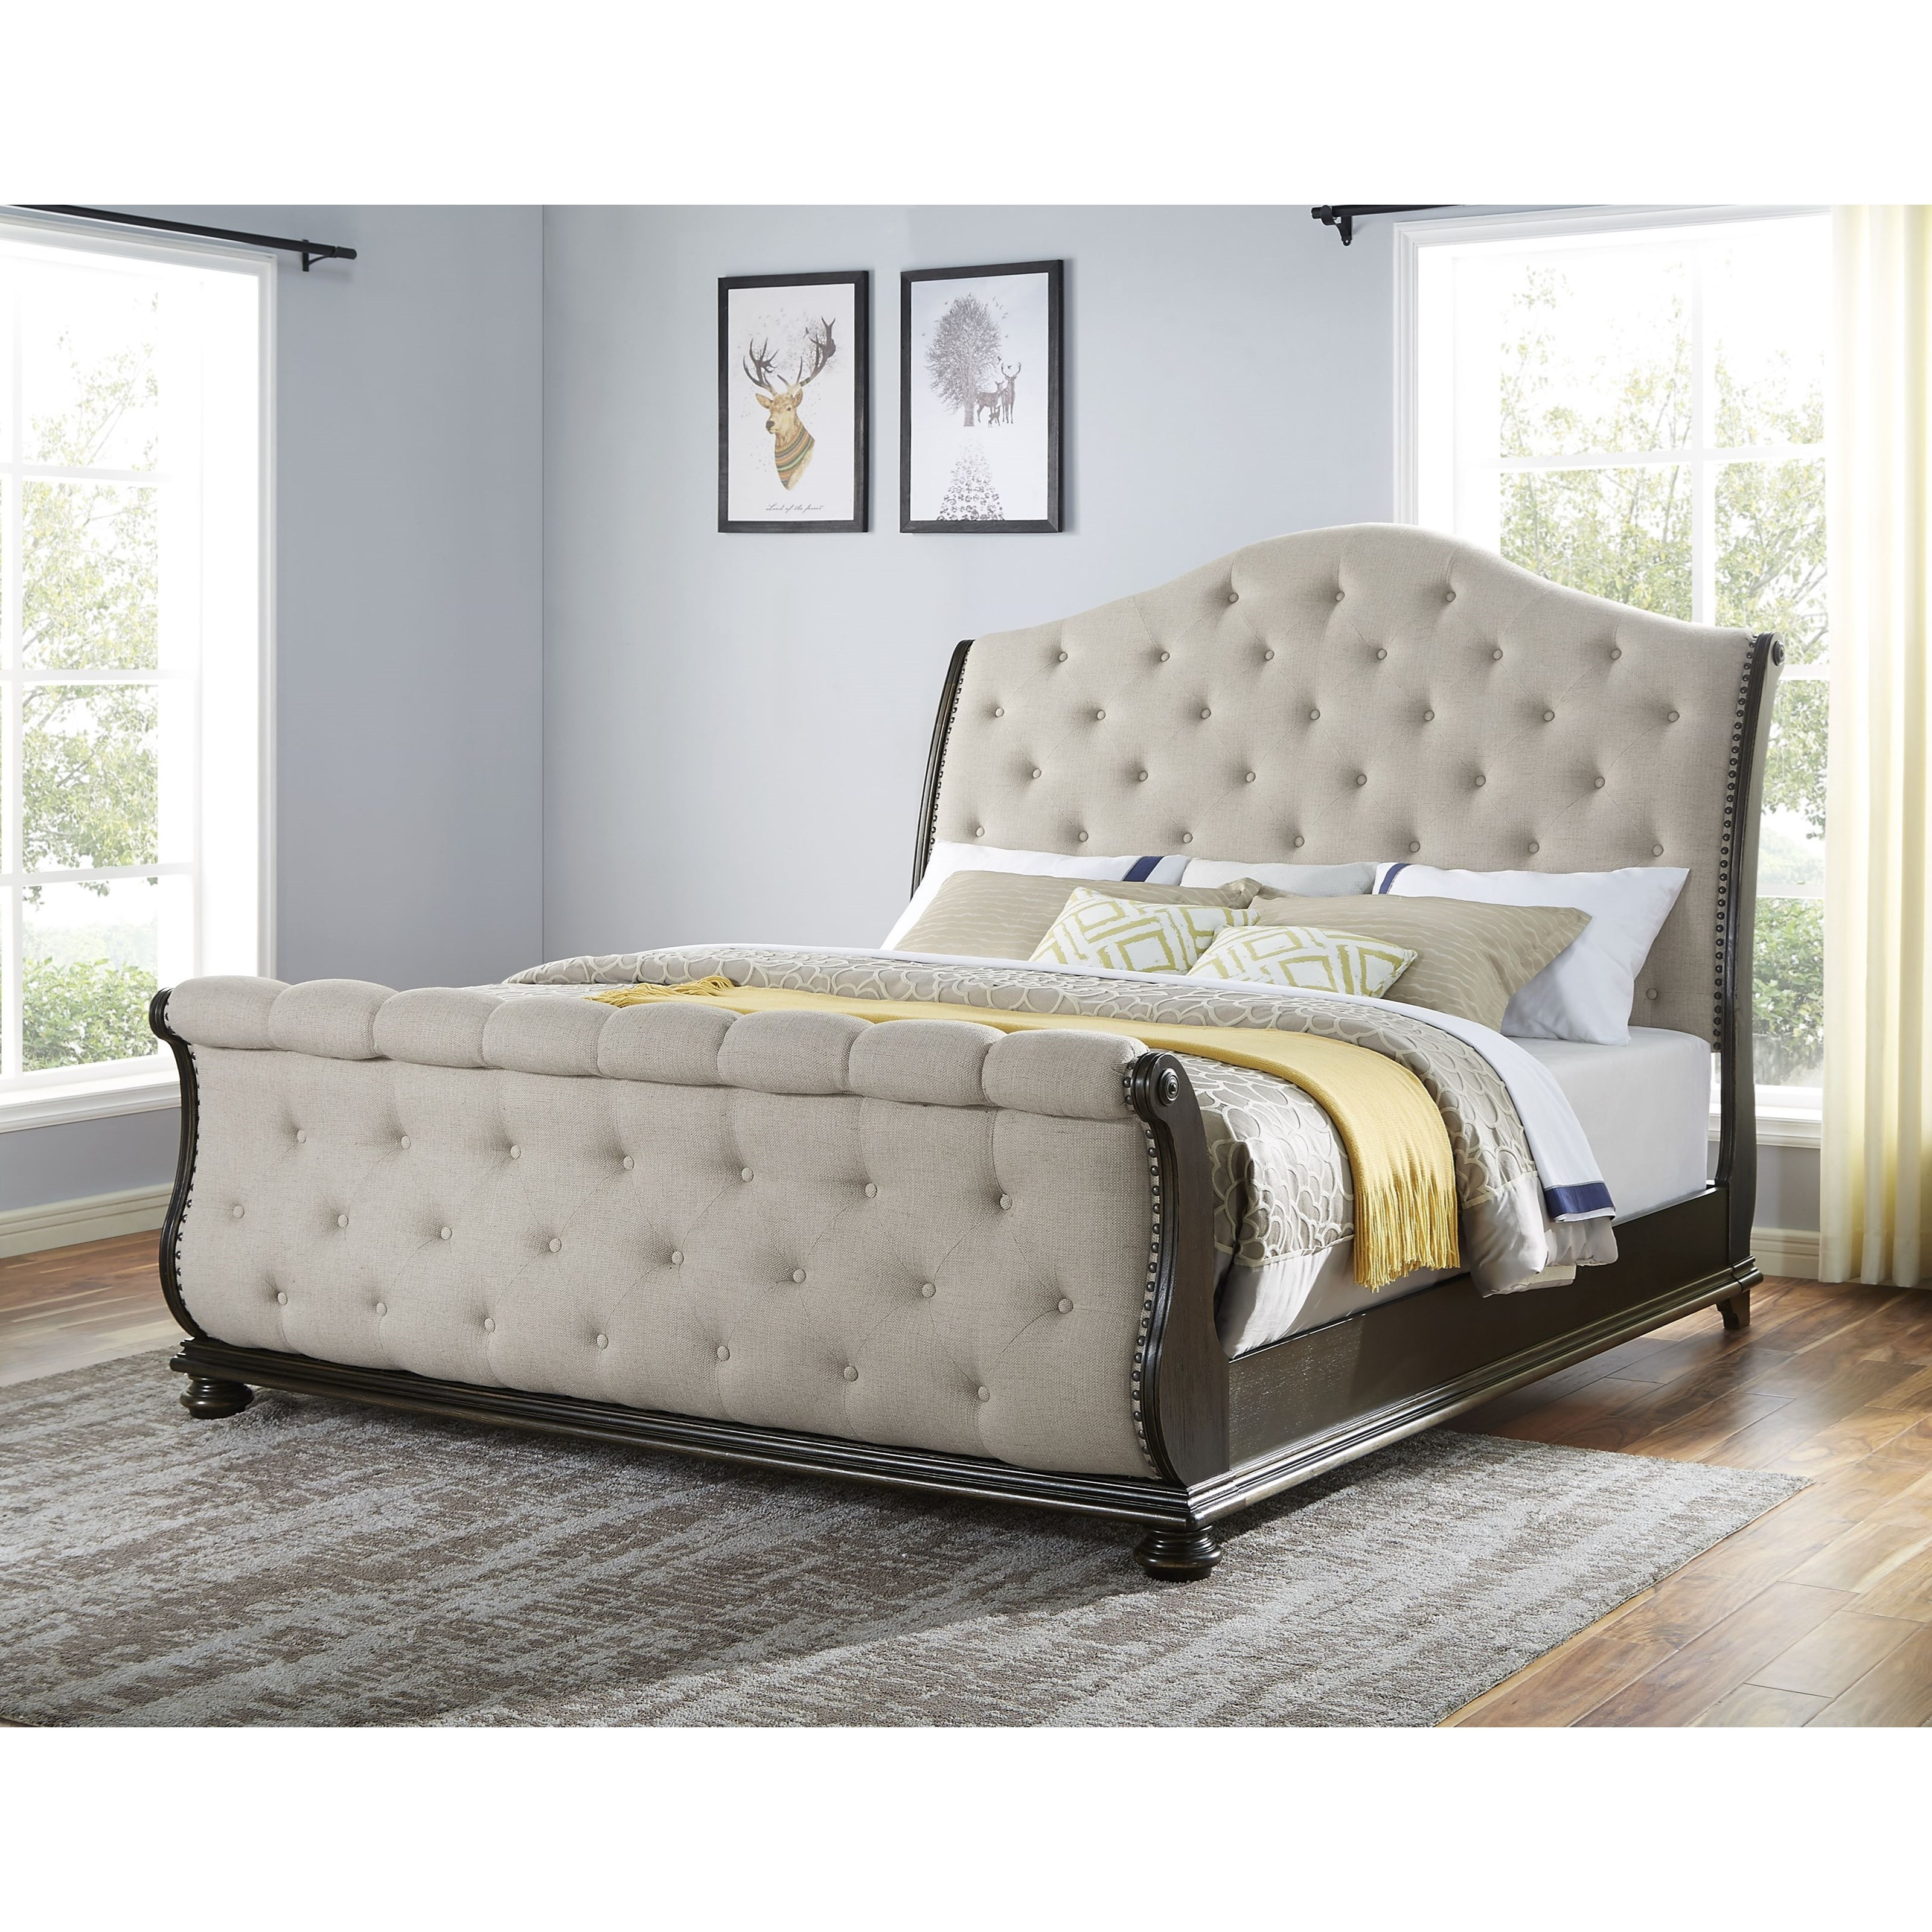 Rhapsody Queen Upholstered Sleigh Bed by Steve Silver at Northeast Factory Direct